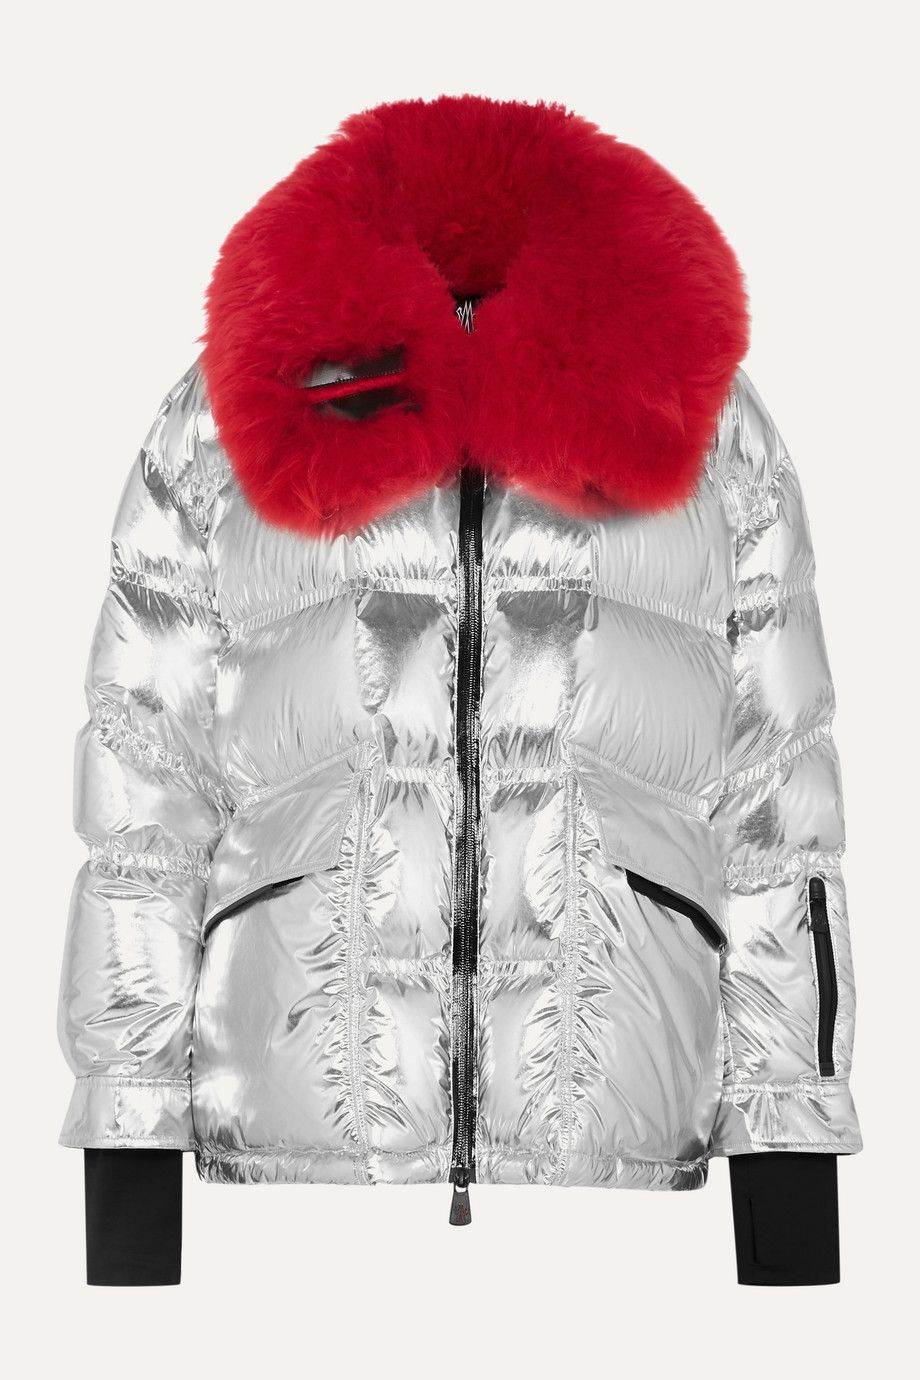 Moncler Grenoble's quilted jacket will ensure that you